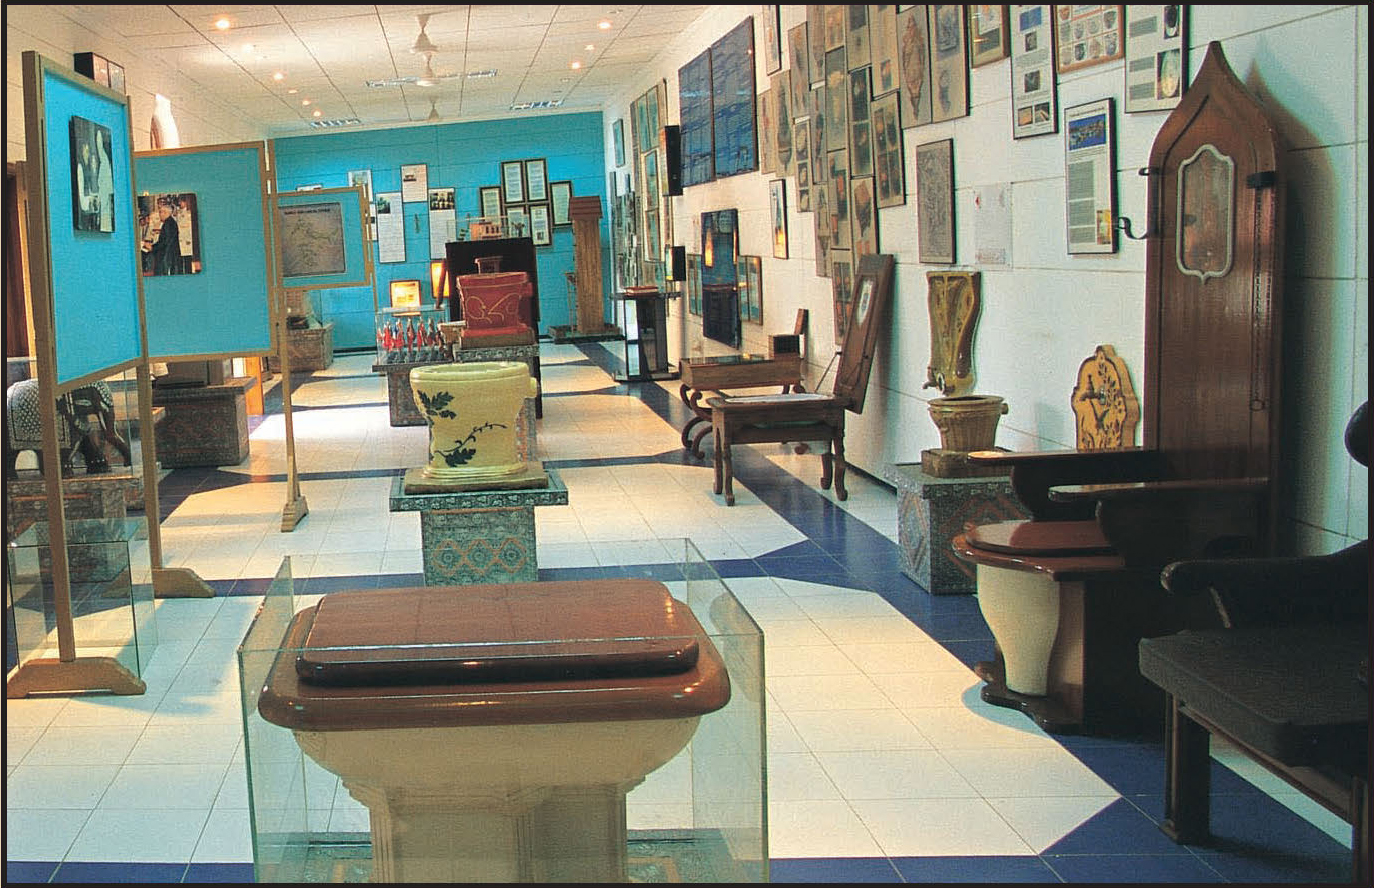 Sulabh International Museum of Toilets Delhi, SULABH INTERNATIONAL MUSEUM OF TOILETS NEW DELHI – Dronah Foundation